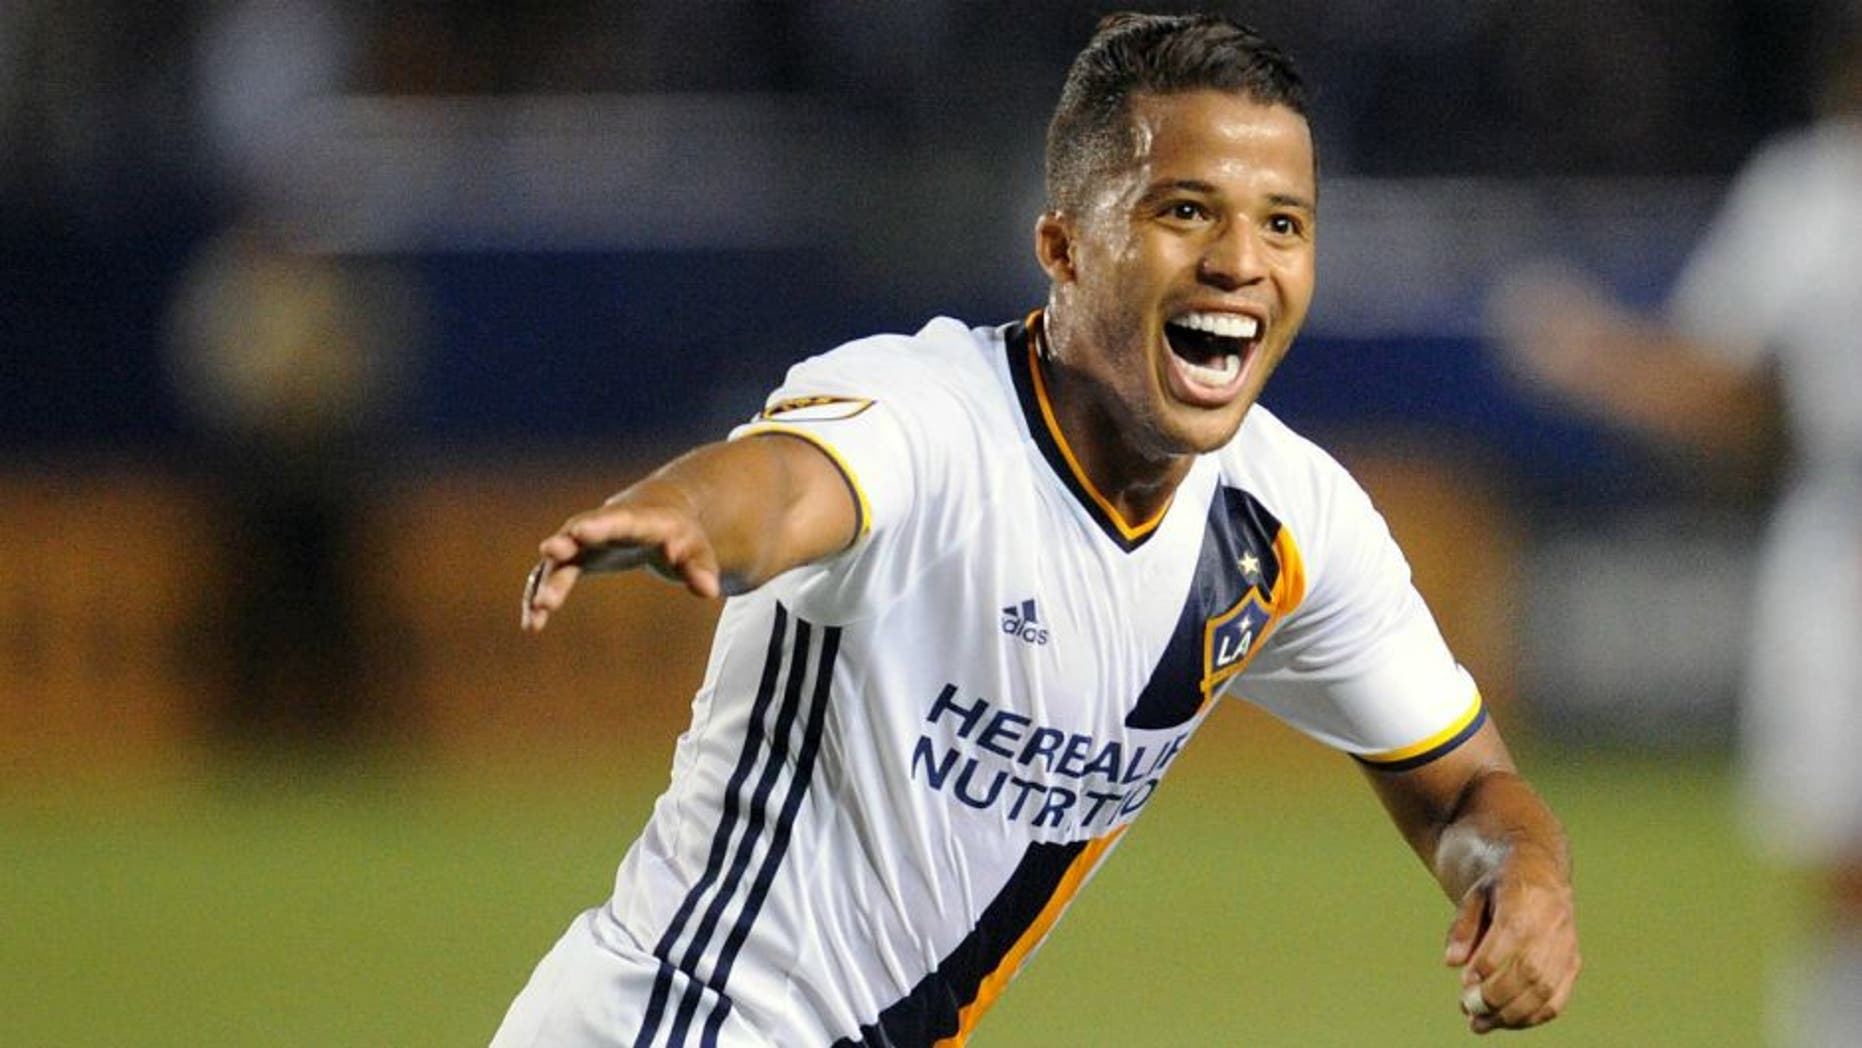 April 23, 2016; Carson, CA, USA; Los Angeles Galaxy forward Giovani dos Santos (10) celebrates his goal scored against Real Salt Lake during the first half at StubHub Center. Mandatory Credit: Gary A. Vasquez-USA TODAY Sports